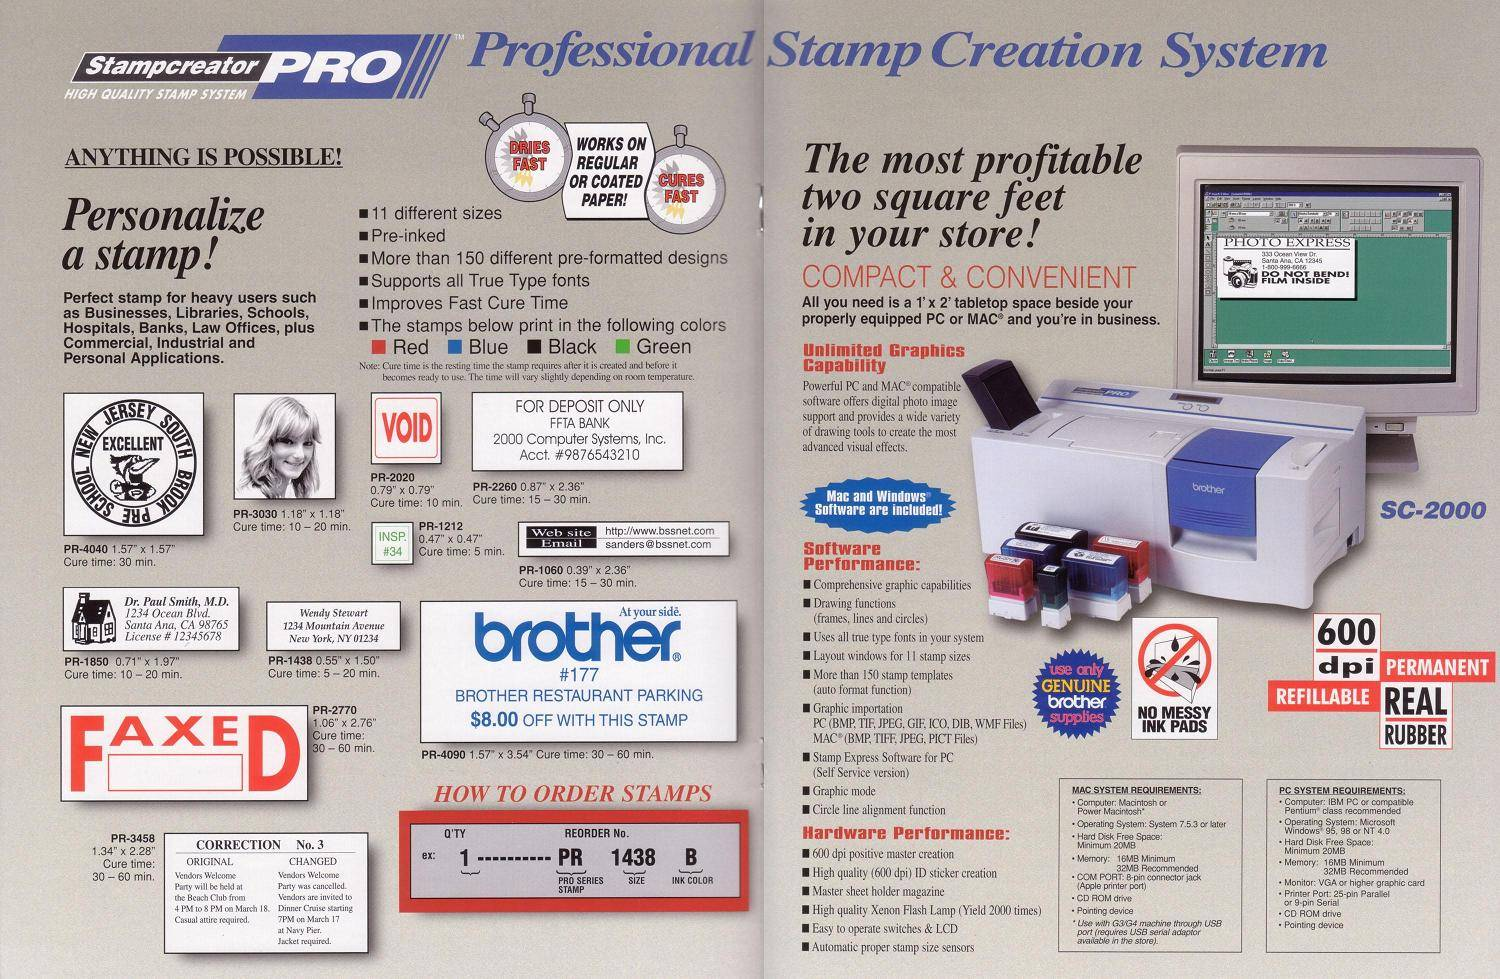 brother stamp